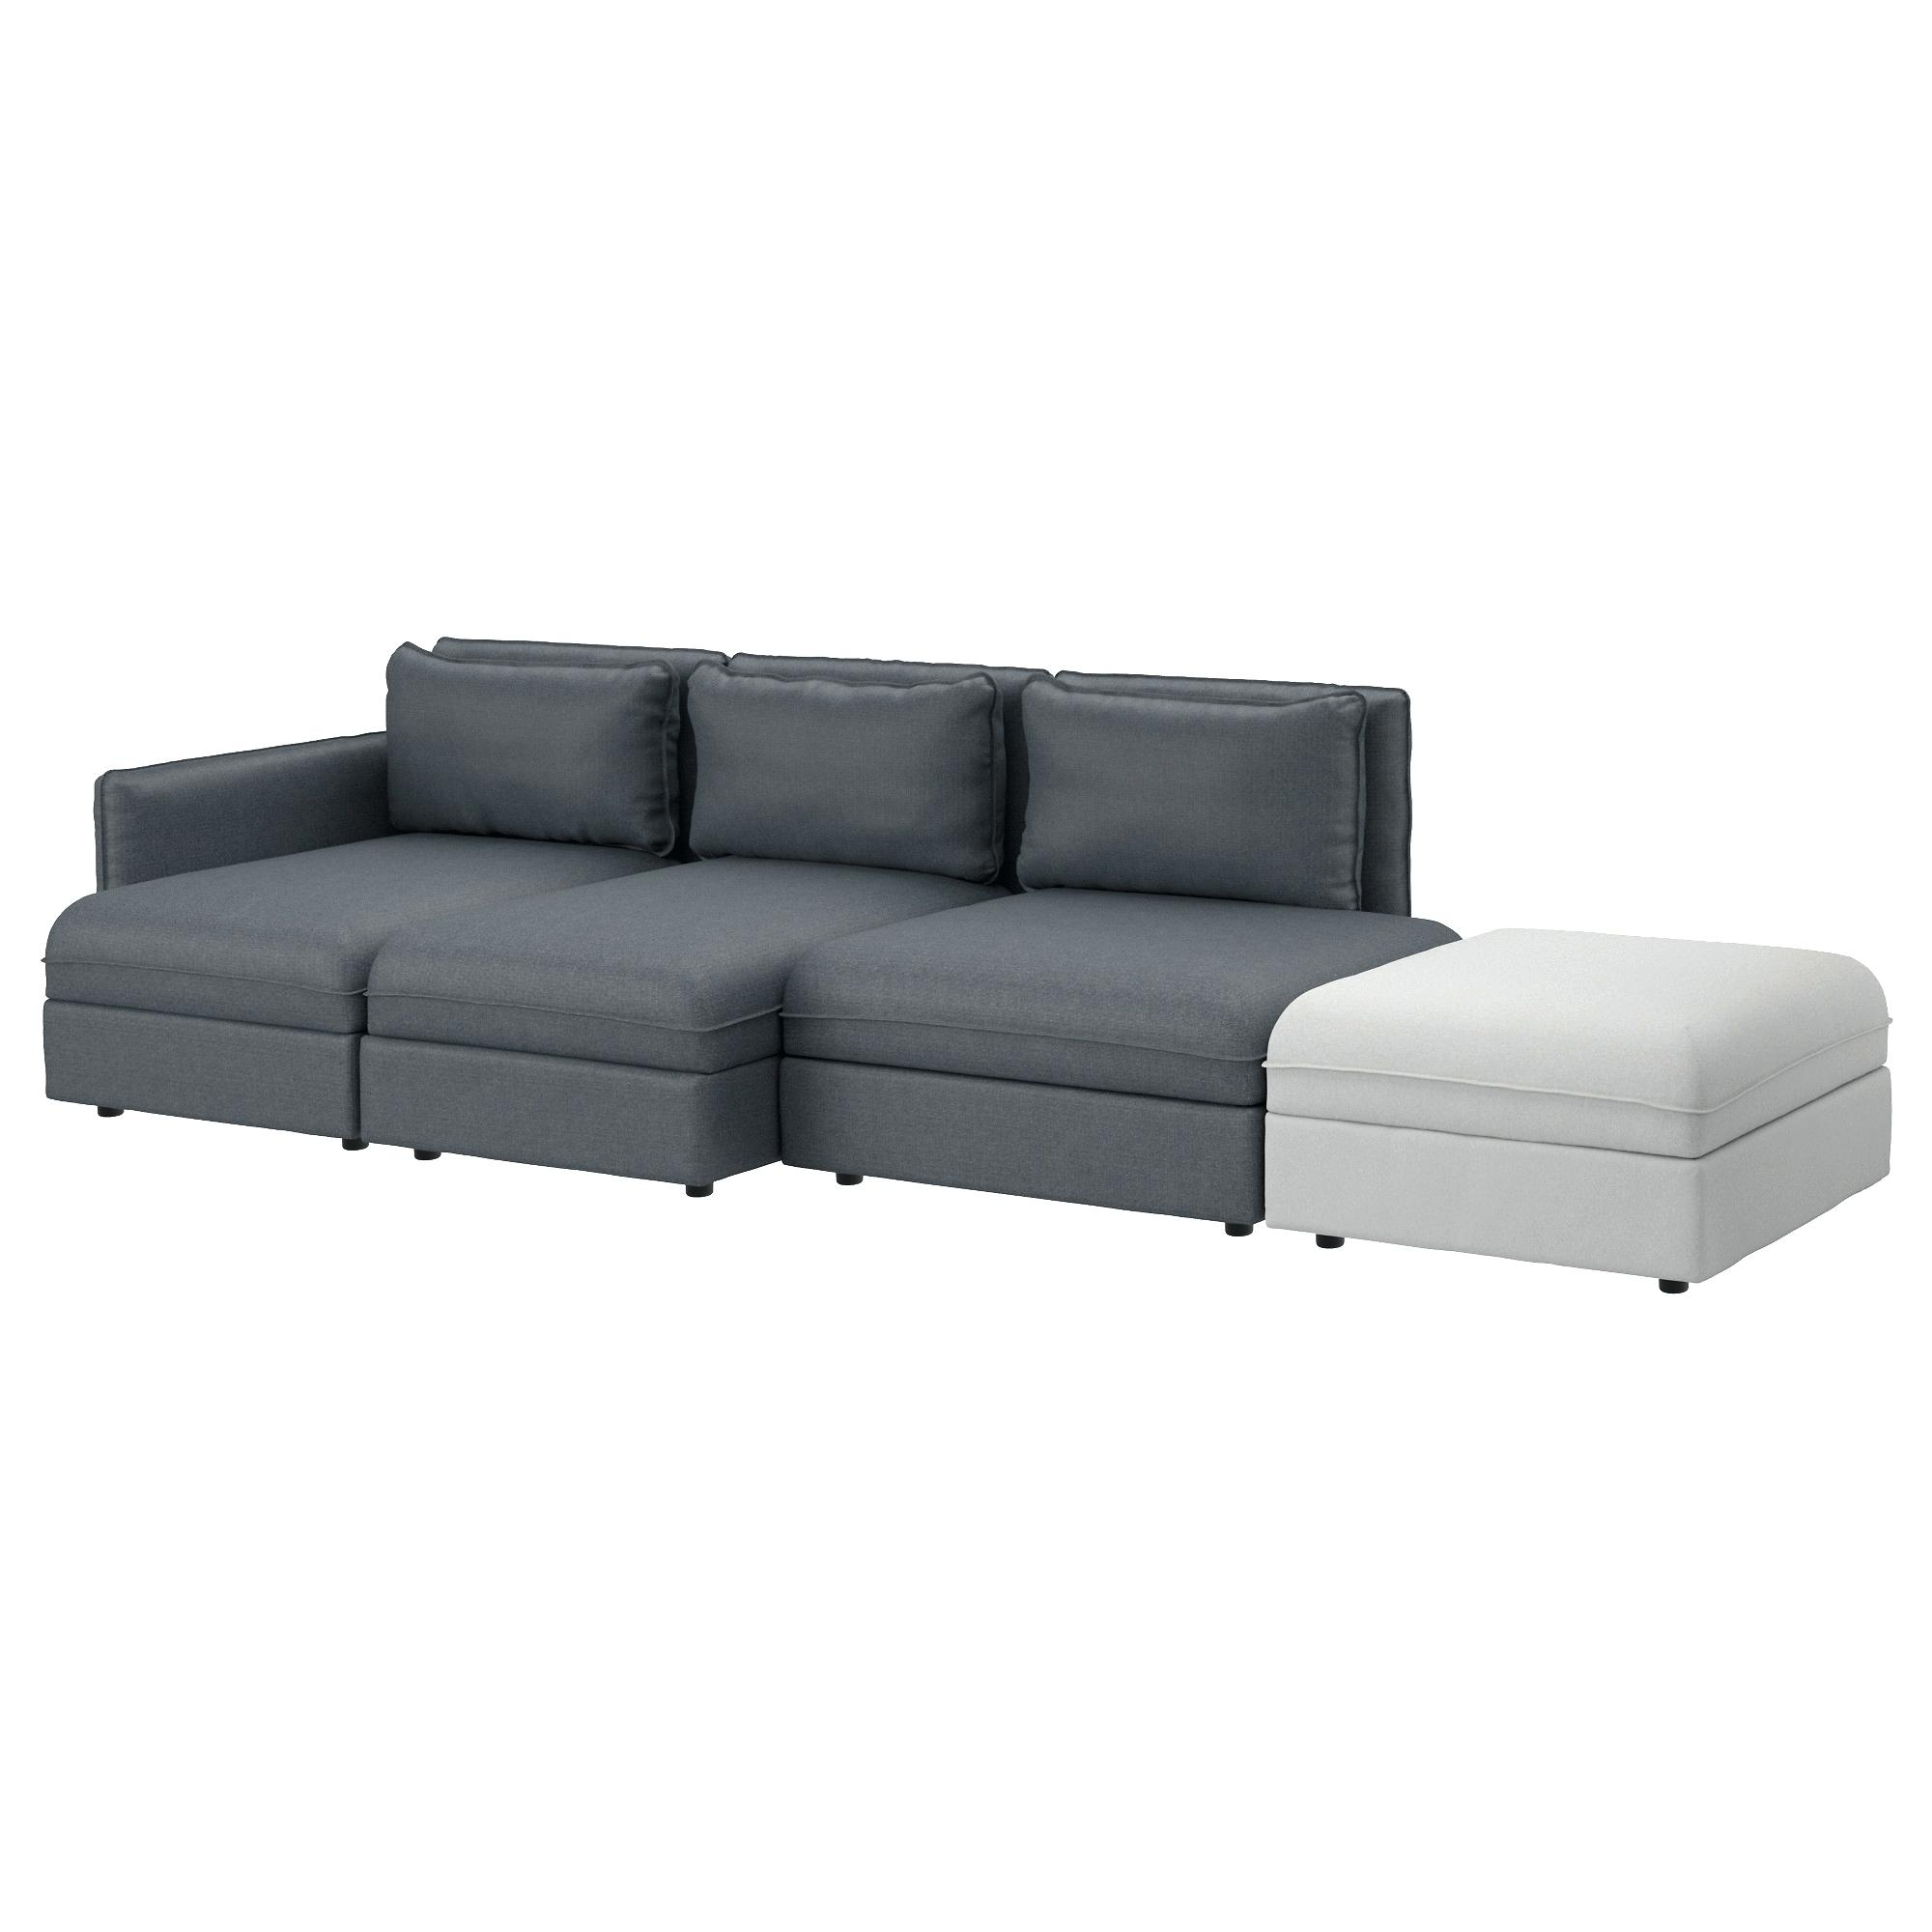 Cheap Sectional Sofas Bobs For Sale Ikea – Stepdesigns regarding Sectional Sofas Under 700 (Image 4 of 15)